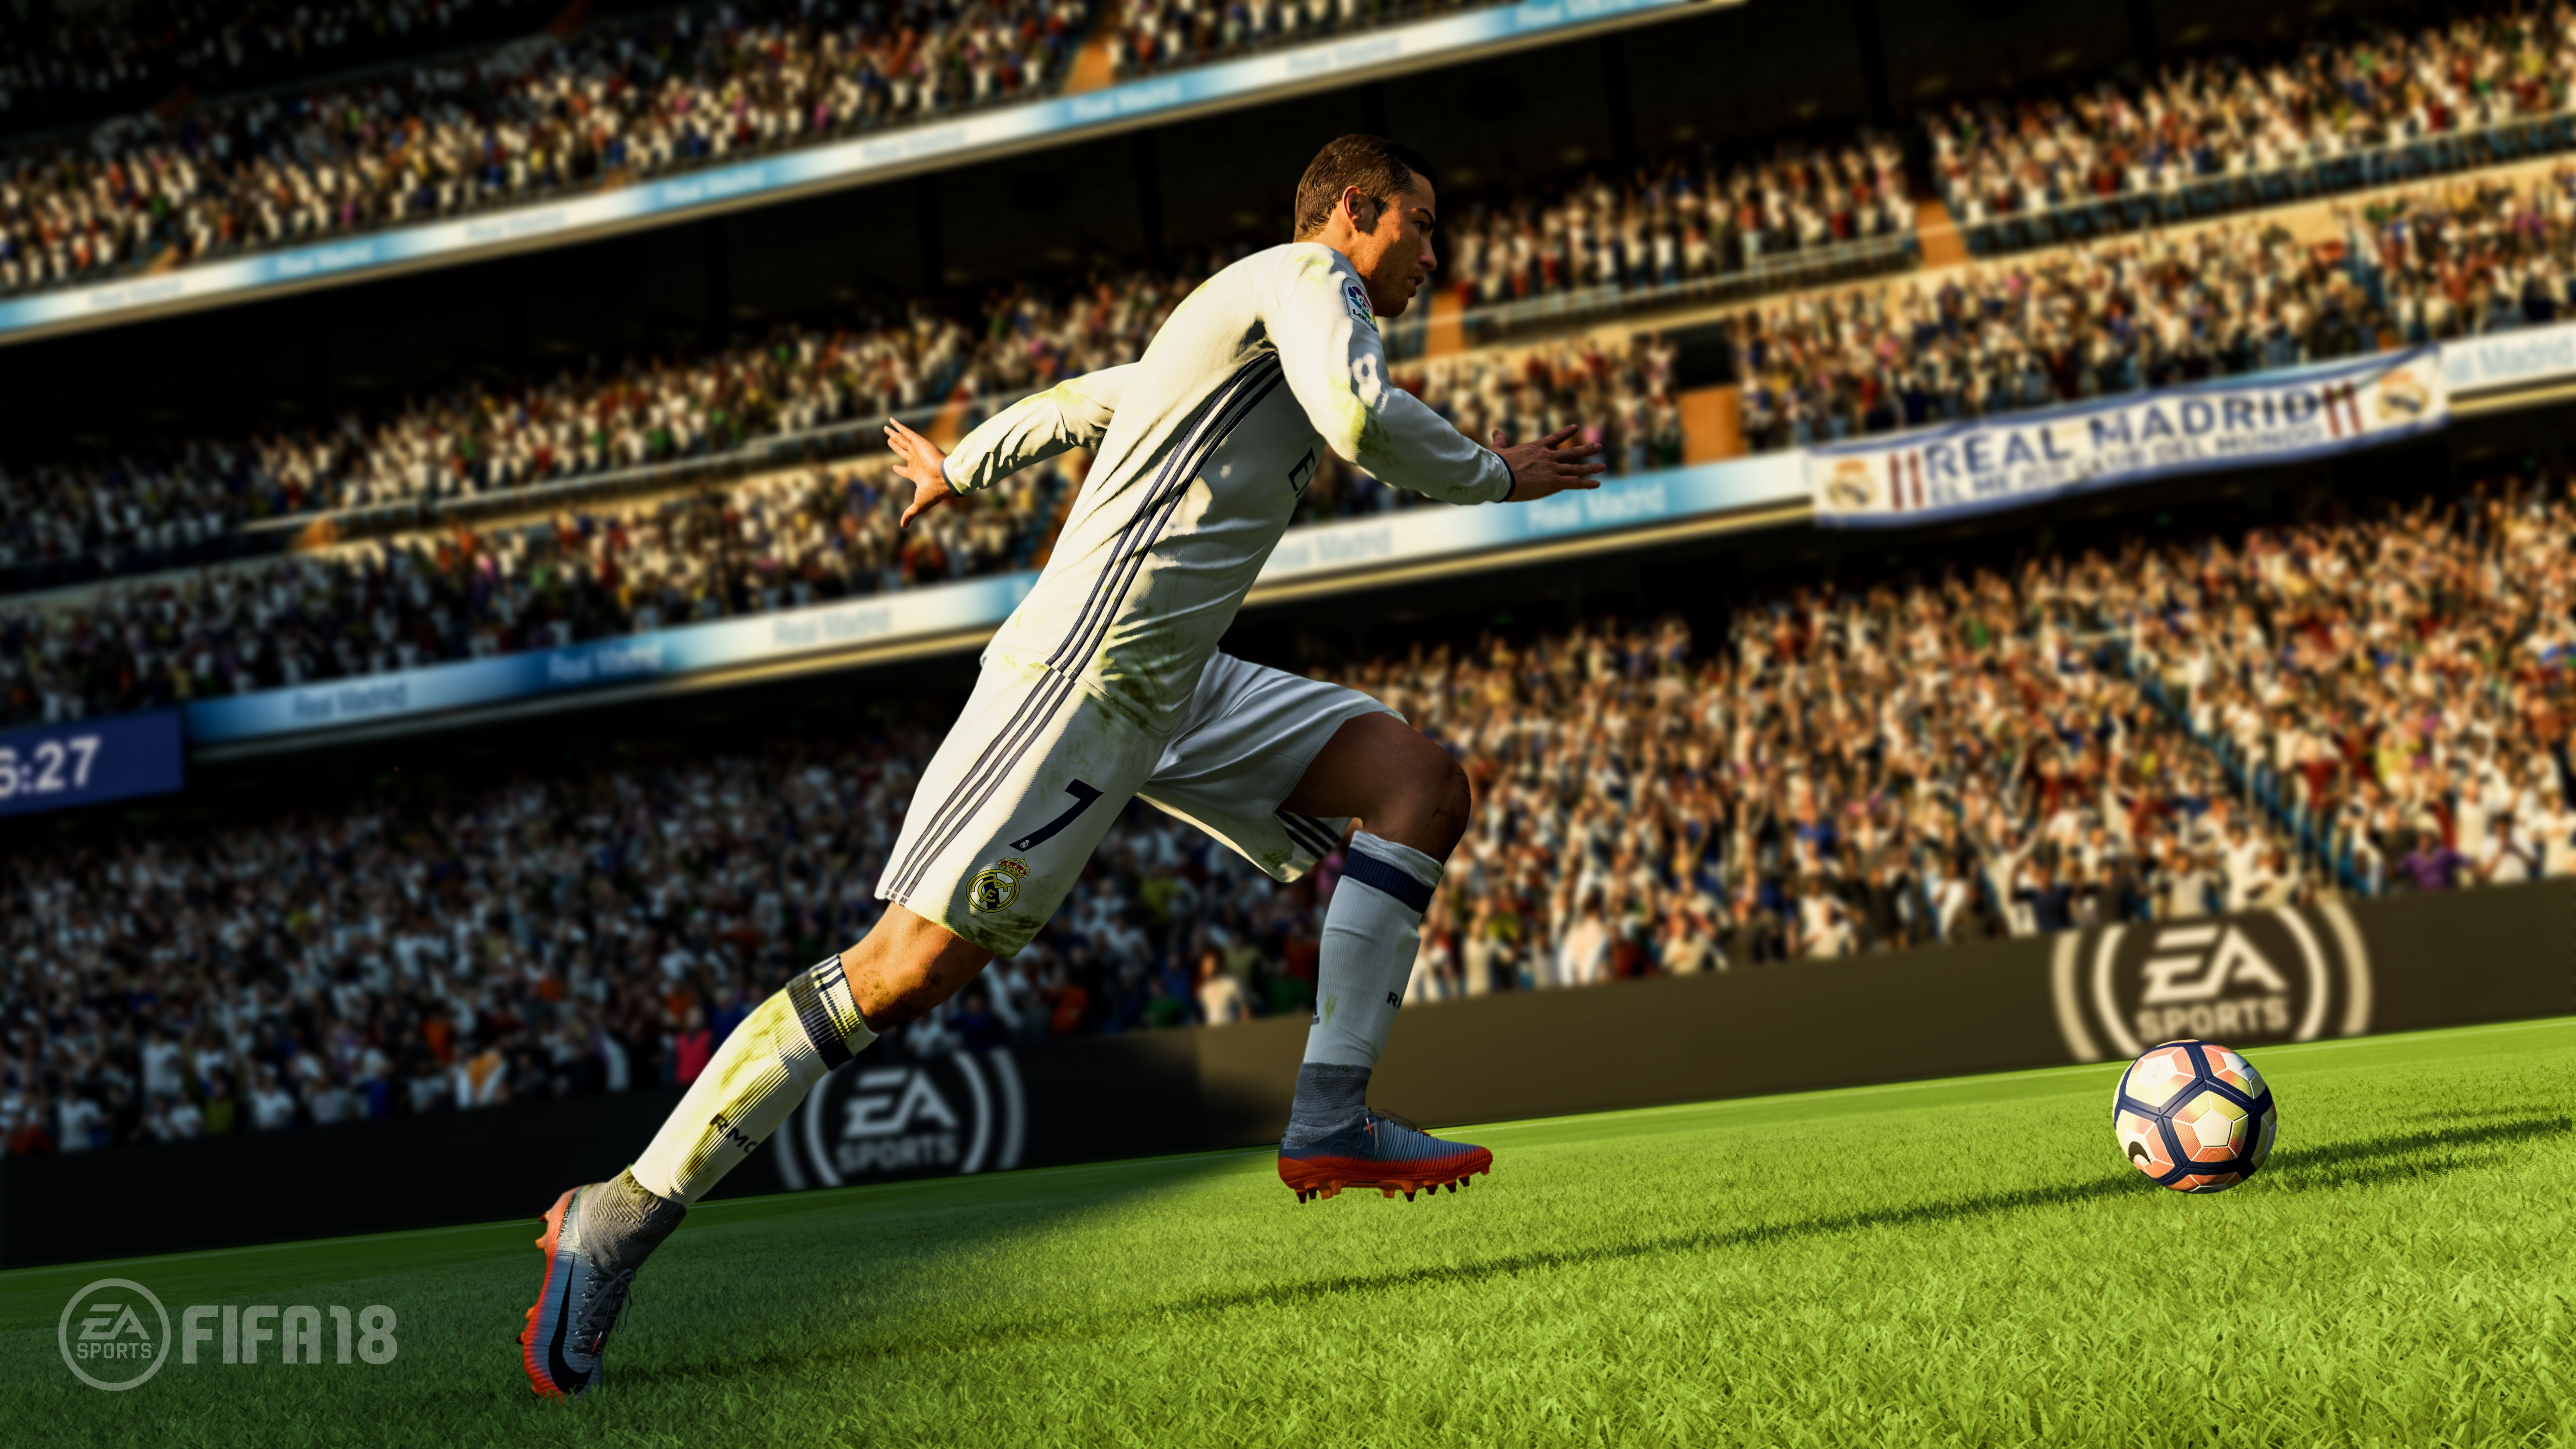 Fifa 18 Electronic Arts Playstation 4 014633735215 Sony Ps4 500gb Dvd 2015